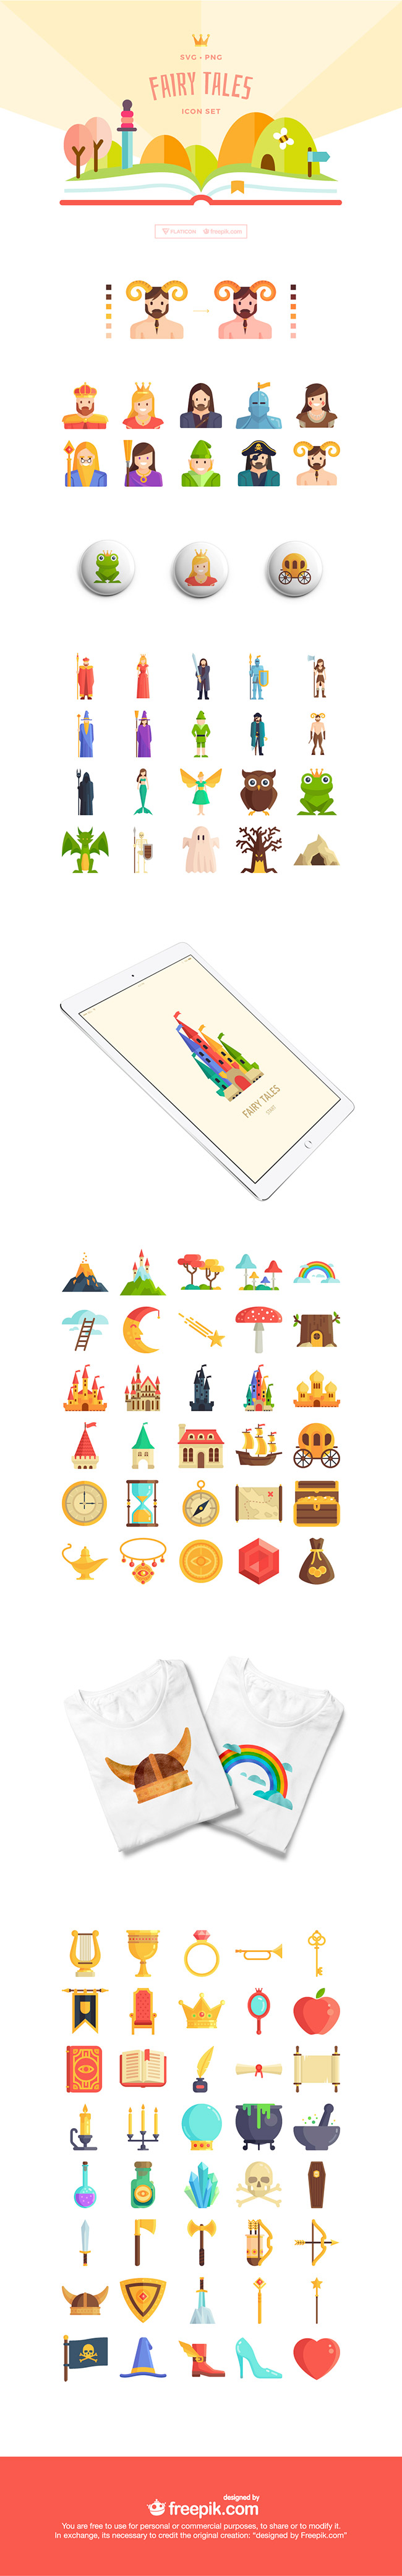 fairy tale preview 100 Free Fairy Tale themed icon set